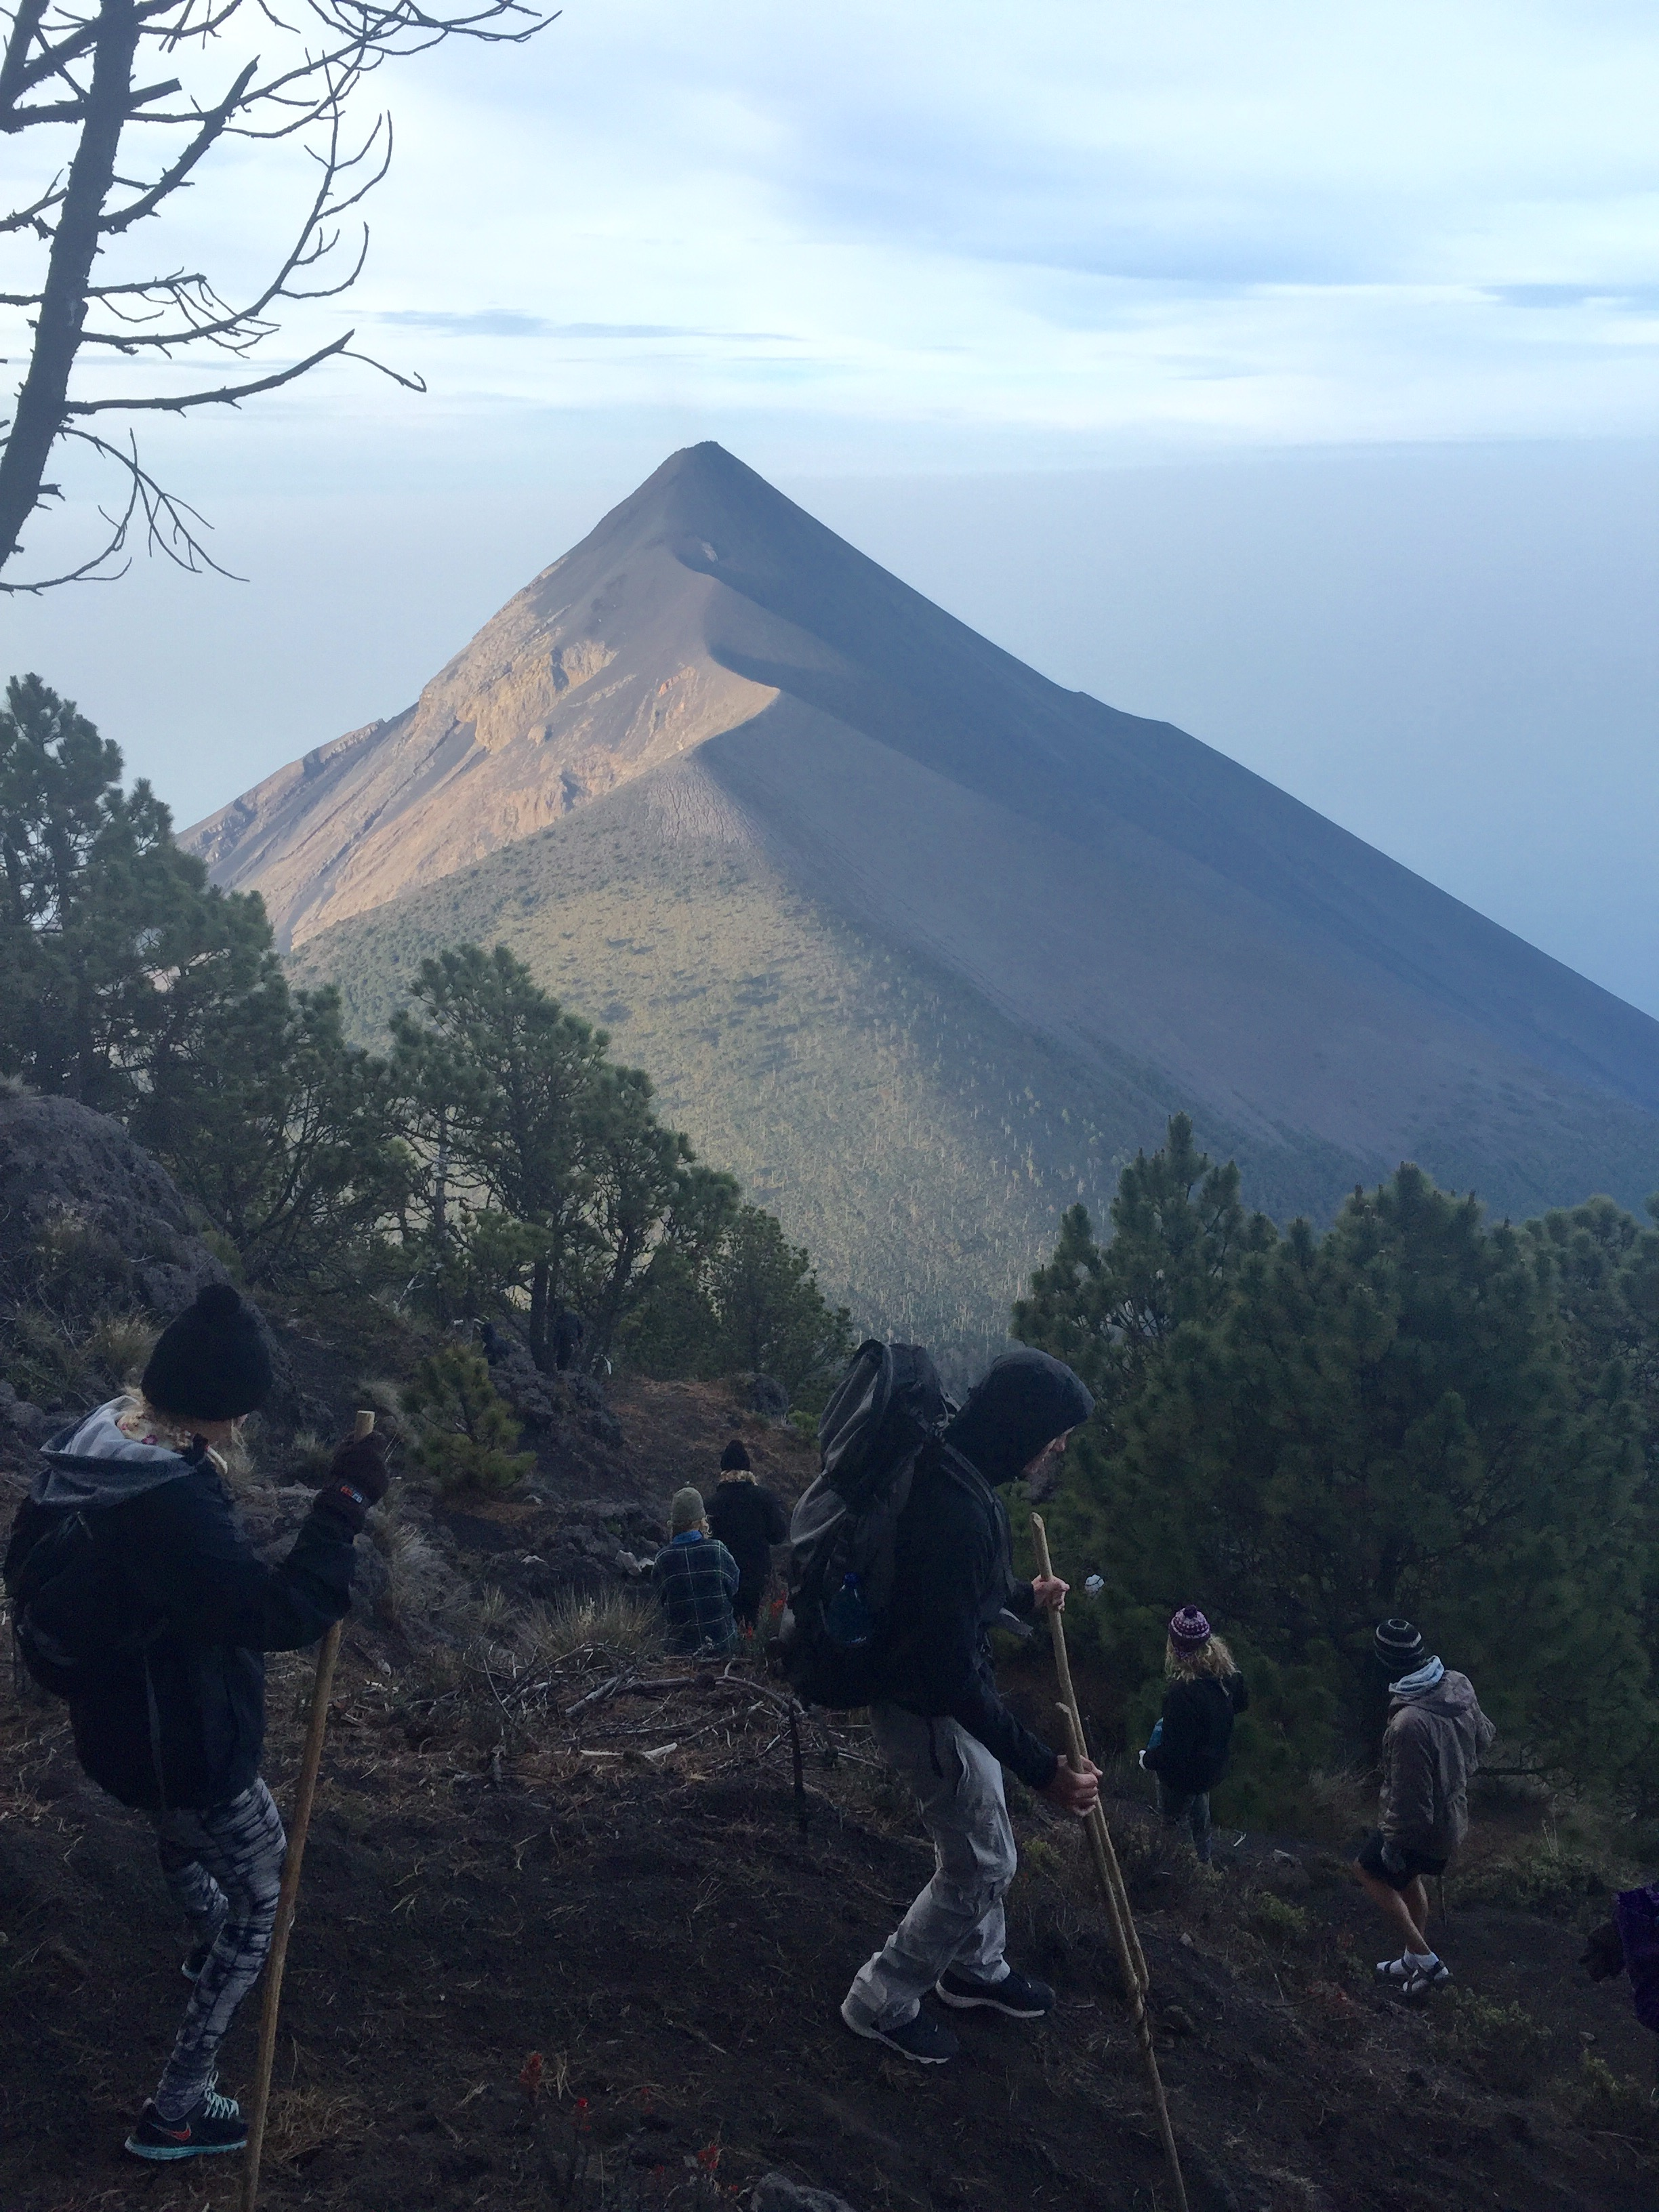 The third portion of our hike in the pine forest, with a view of Volcan de Fuego.